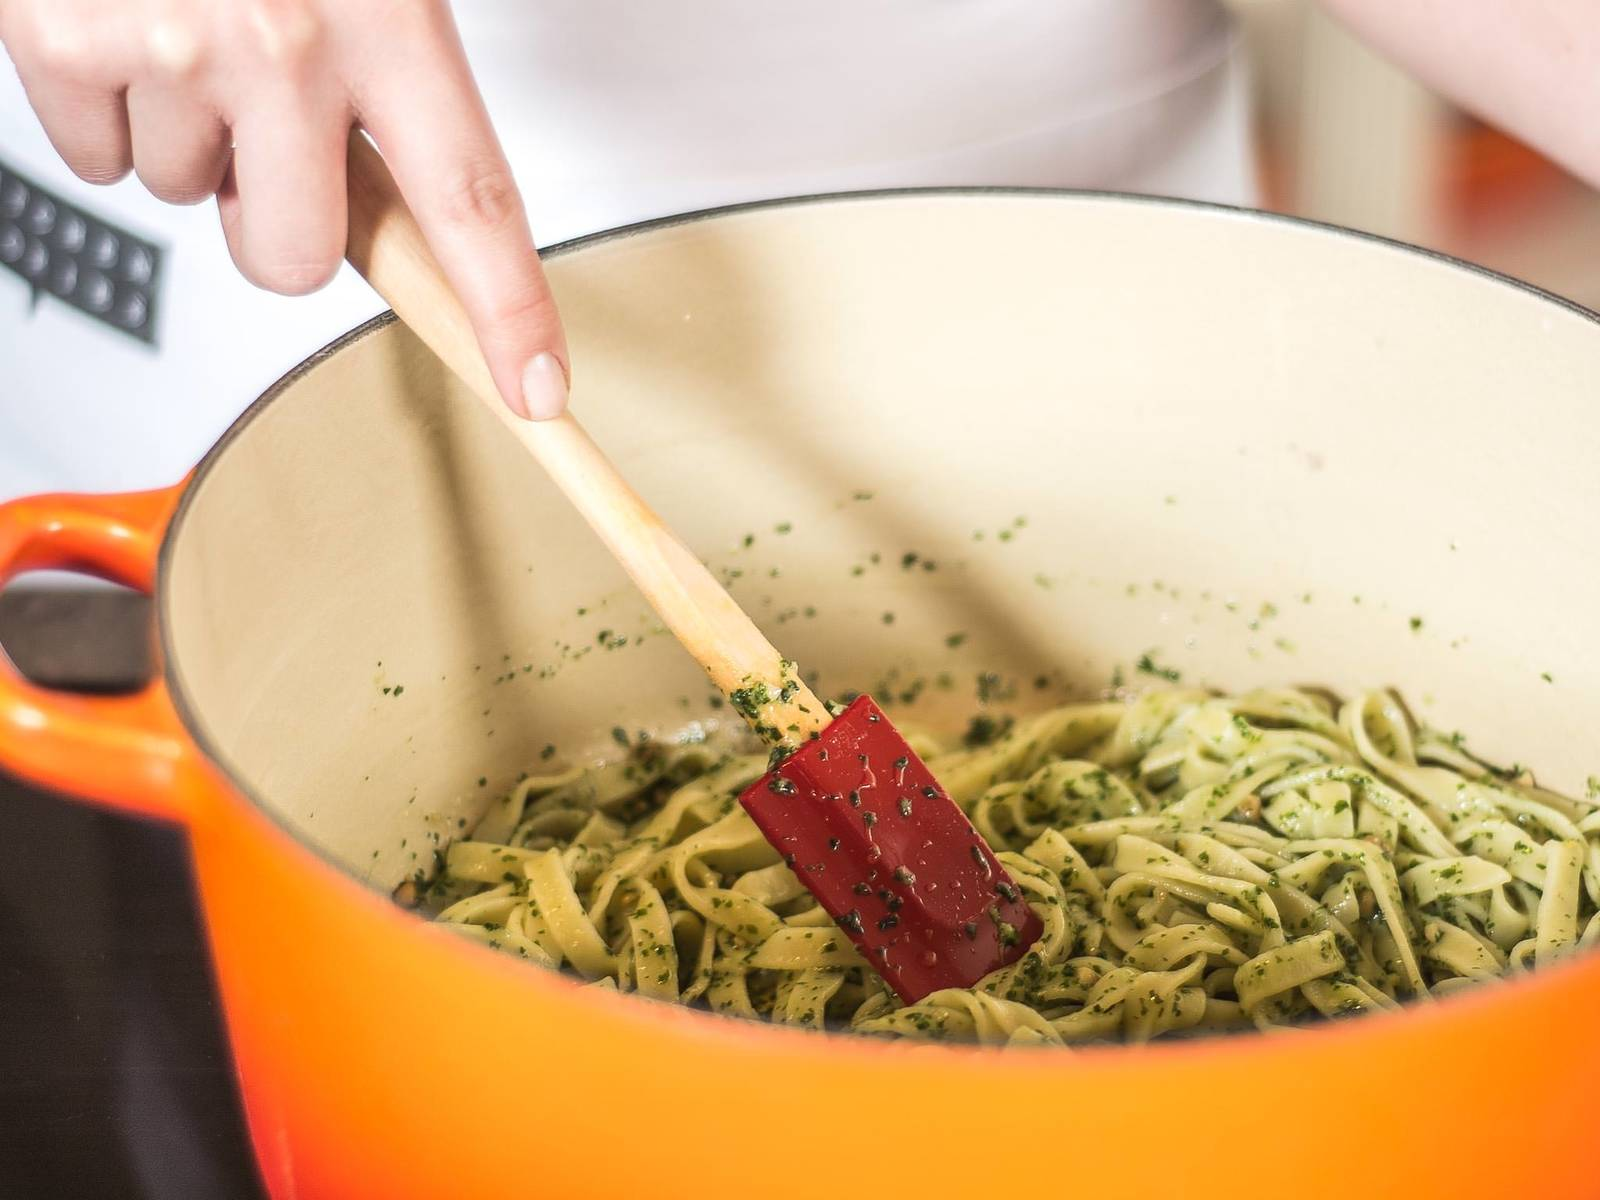 Toss the tagliatelle in with the pesto. For this you can use the same pot as the tagliatelle was cooked in. Arrange the strips of bresaola on top of the pasta to serve.